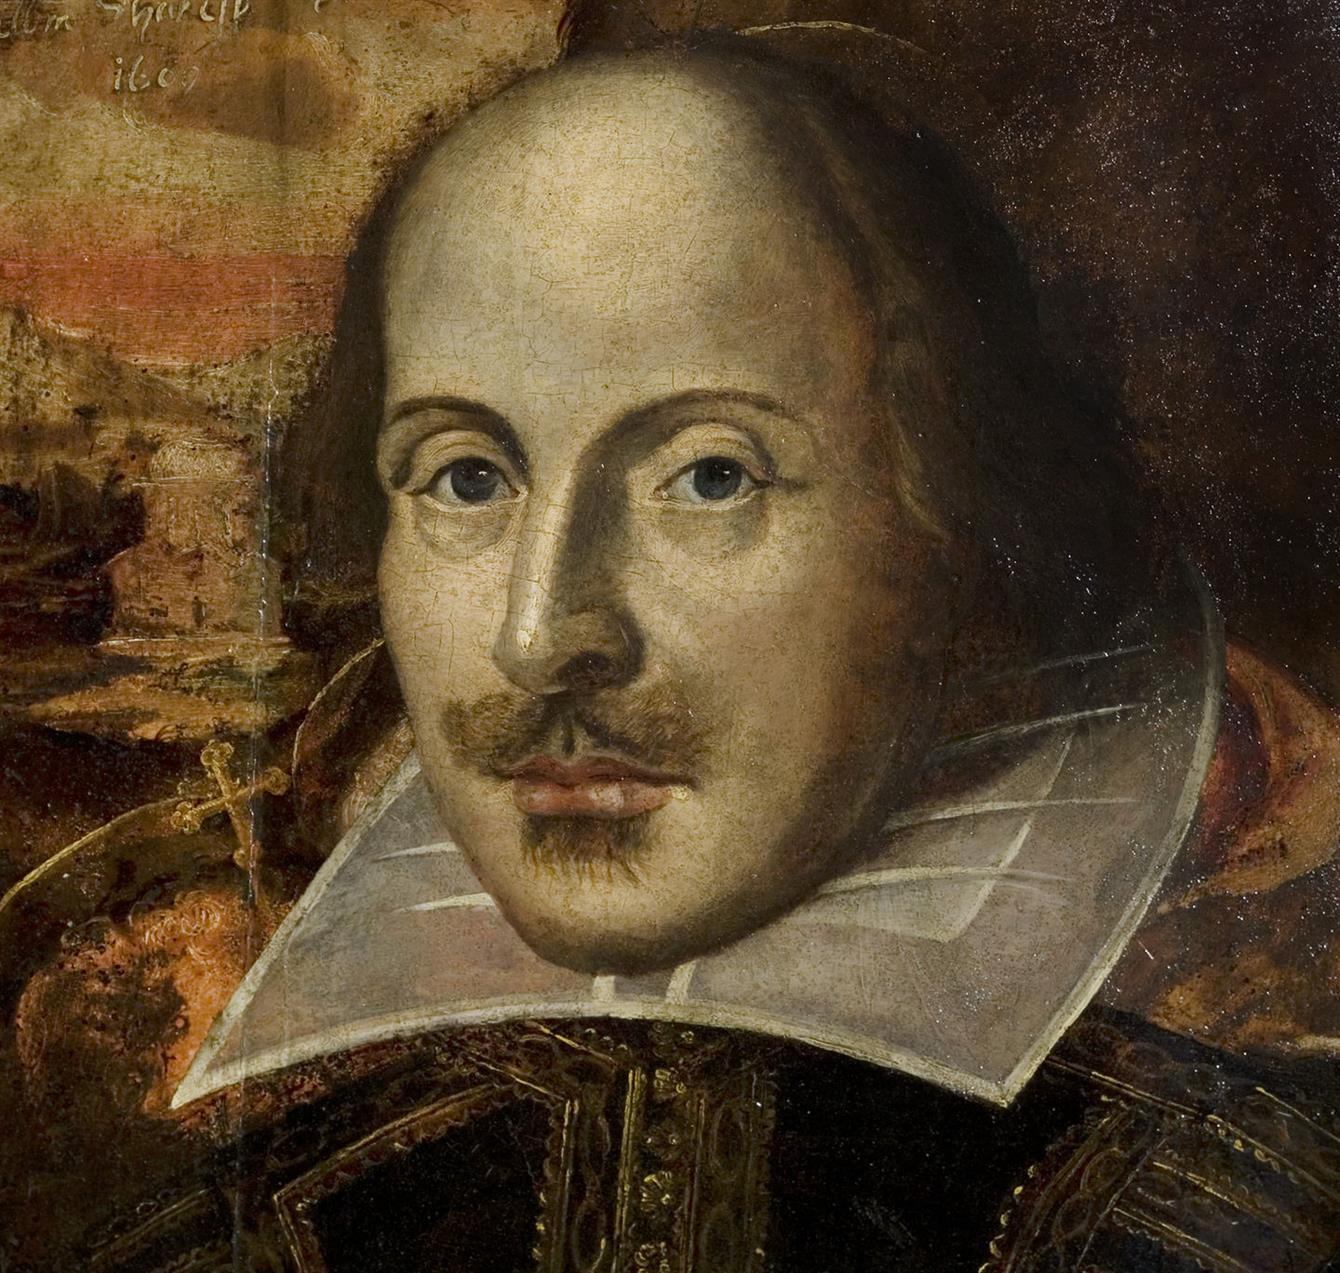 shakespeare in modern times Shakespeare's lessons and themes transcend his elizabethan time period, they are things that are still just as relatable in modern times the tragic love story of romeo and juliet is still just as relatable as it was then.